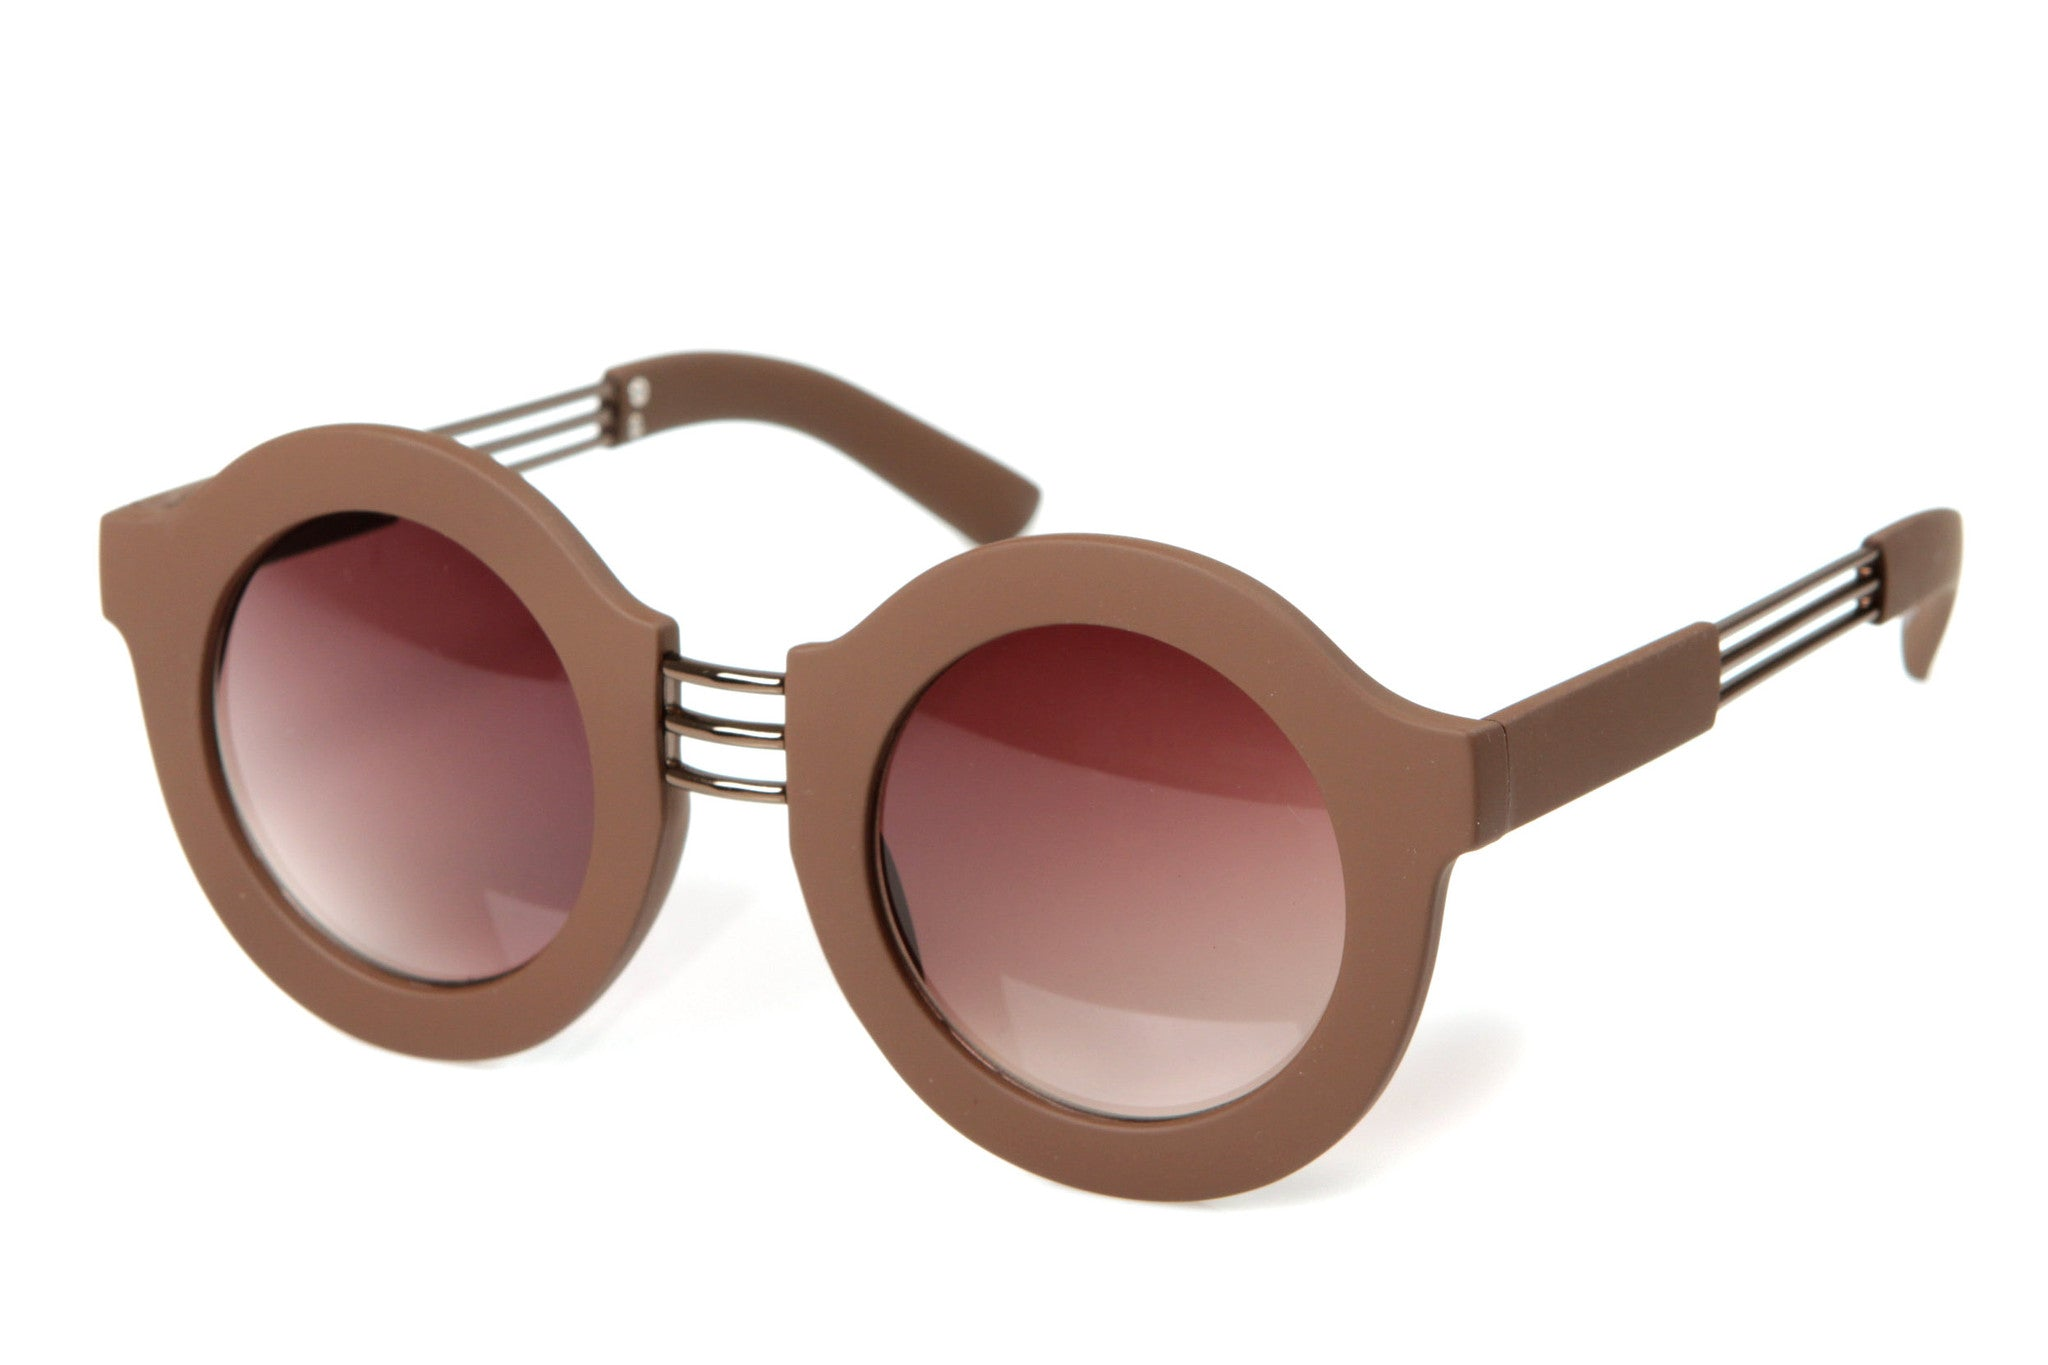 Dakota Rounded Frame Matte Finished Sunglasses